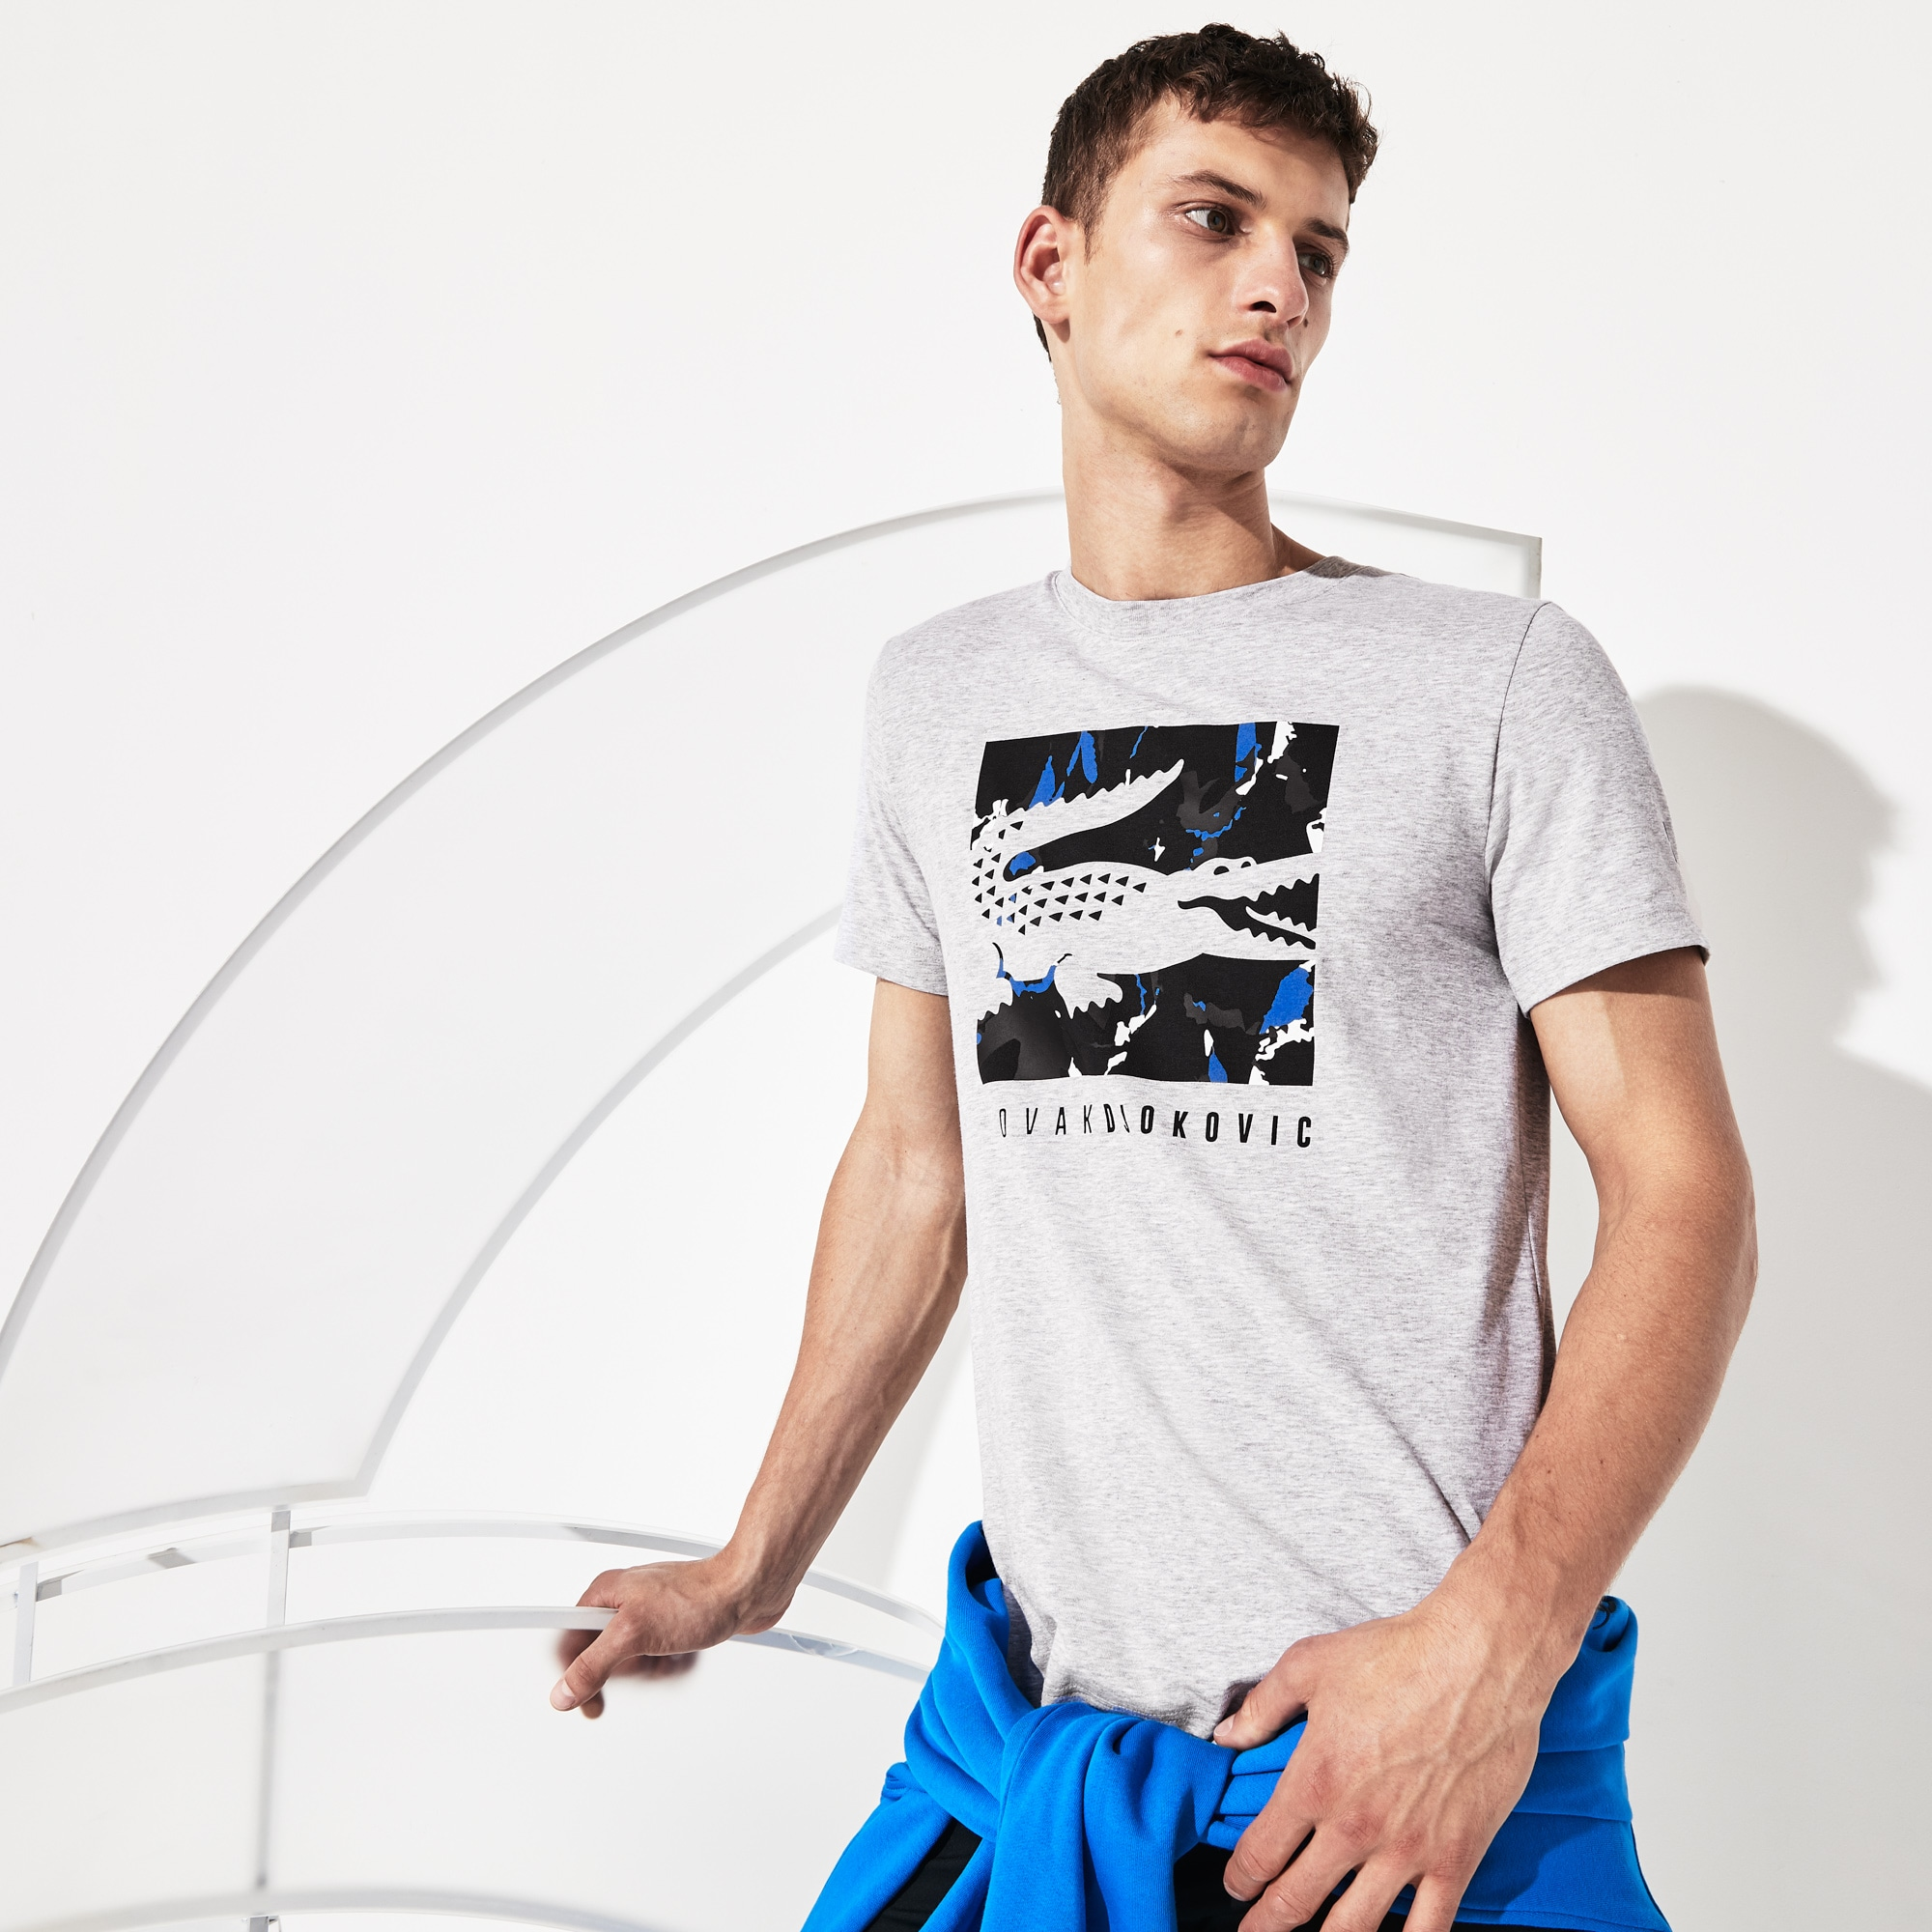 Lacoste SPORT x Novak Djokovic Collection-T-shirt heren krokodillenlogo met camouflageprint